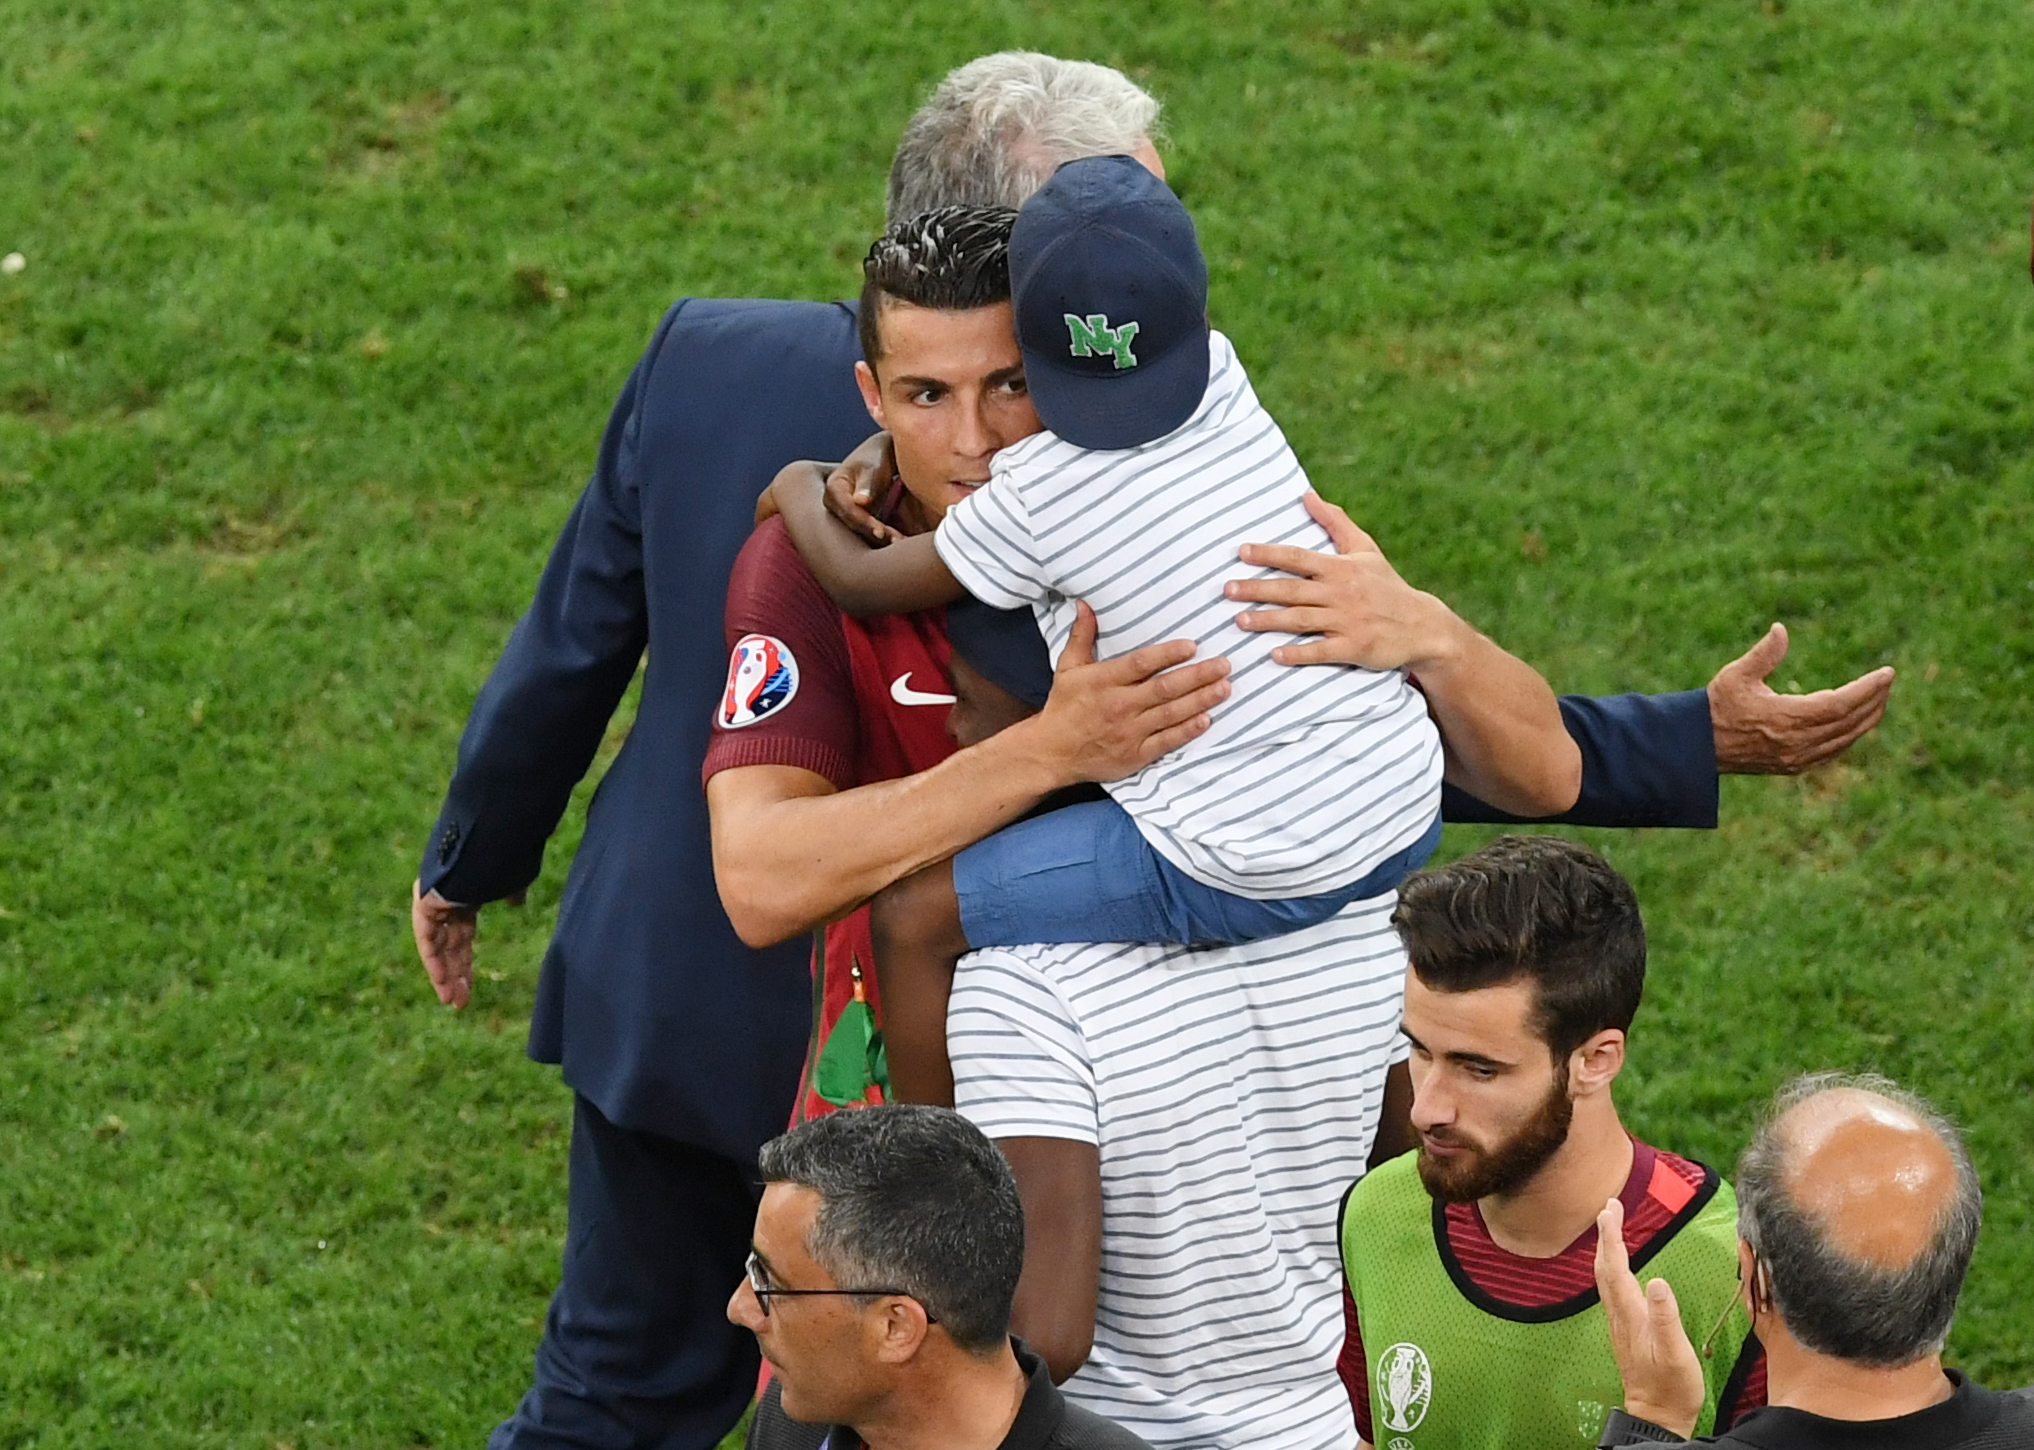 Portugal's forward Cristiano Ronaldo hugs a child after the Euro 2016 quarter-final football match between Poland and Portugal at the Stade Velodrome in Marseille on June 30, 2016. / AFP PHOTO / BORIS HORVAT